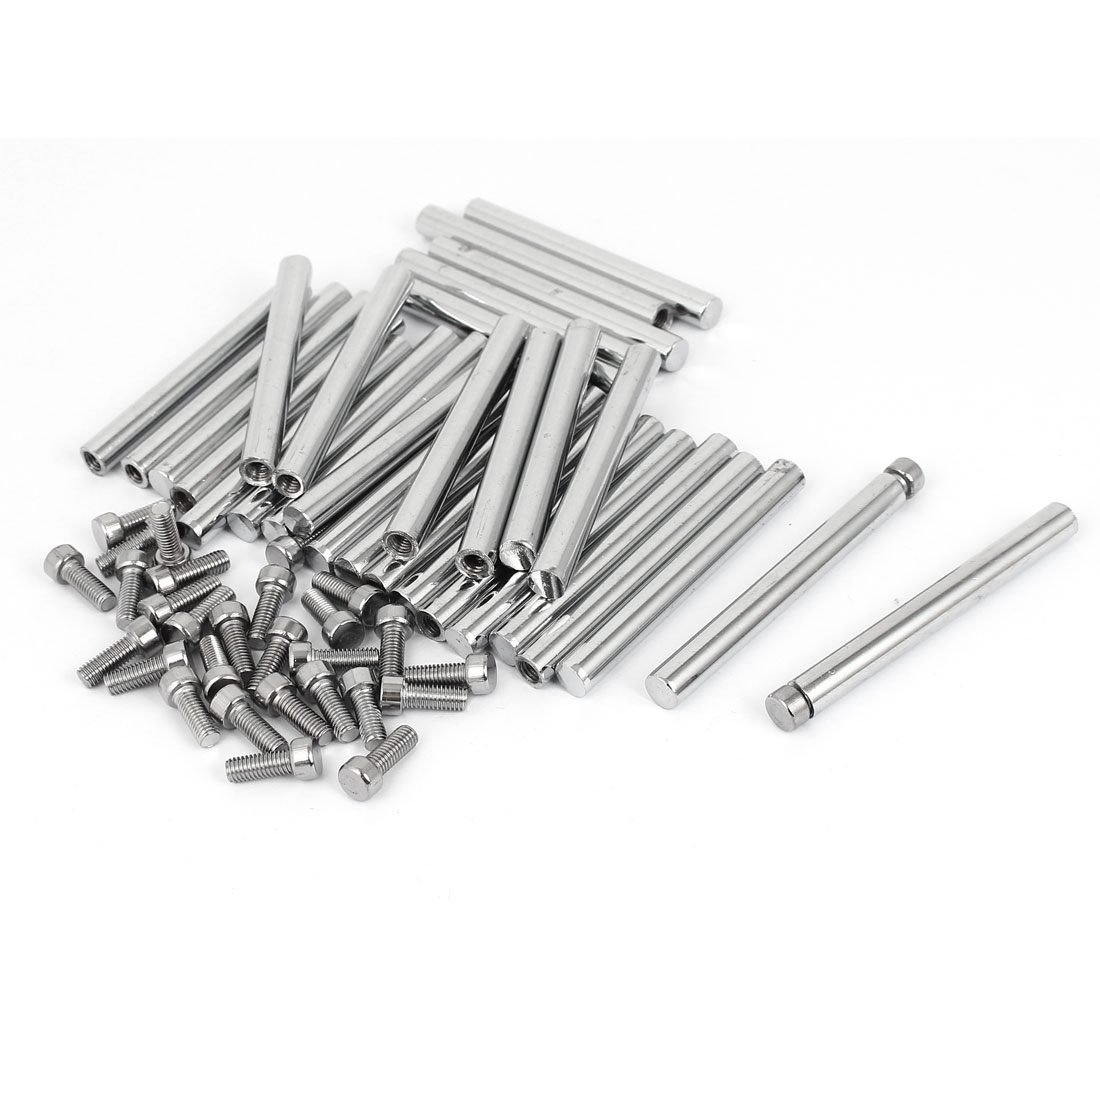 8mm x 75mm Stainless Steel Advertisment Nails Glass Wall Connector Standoff 30 Pcs